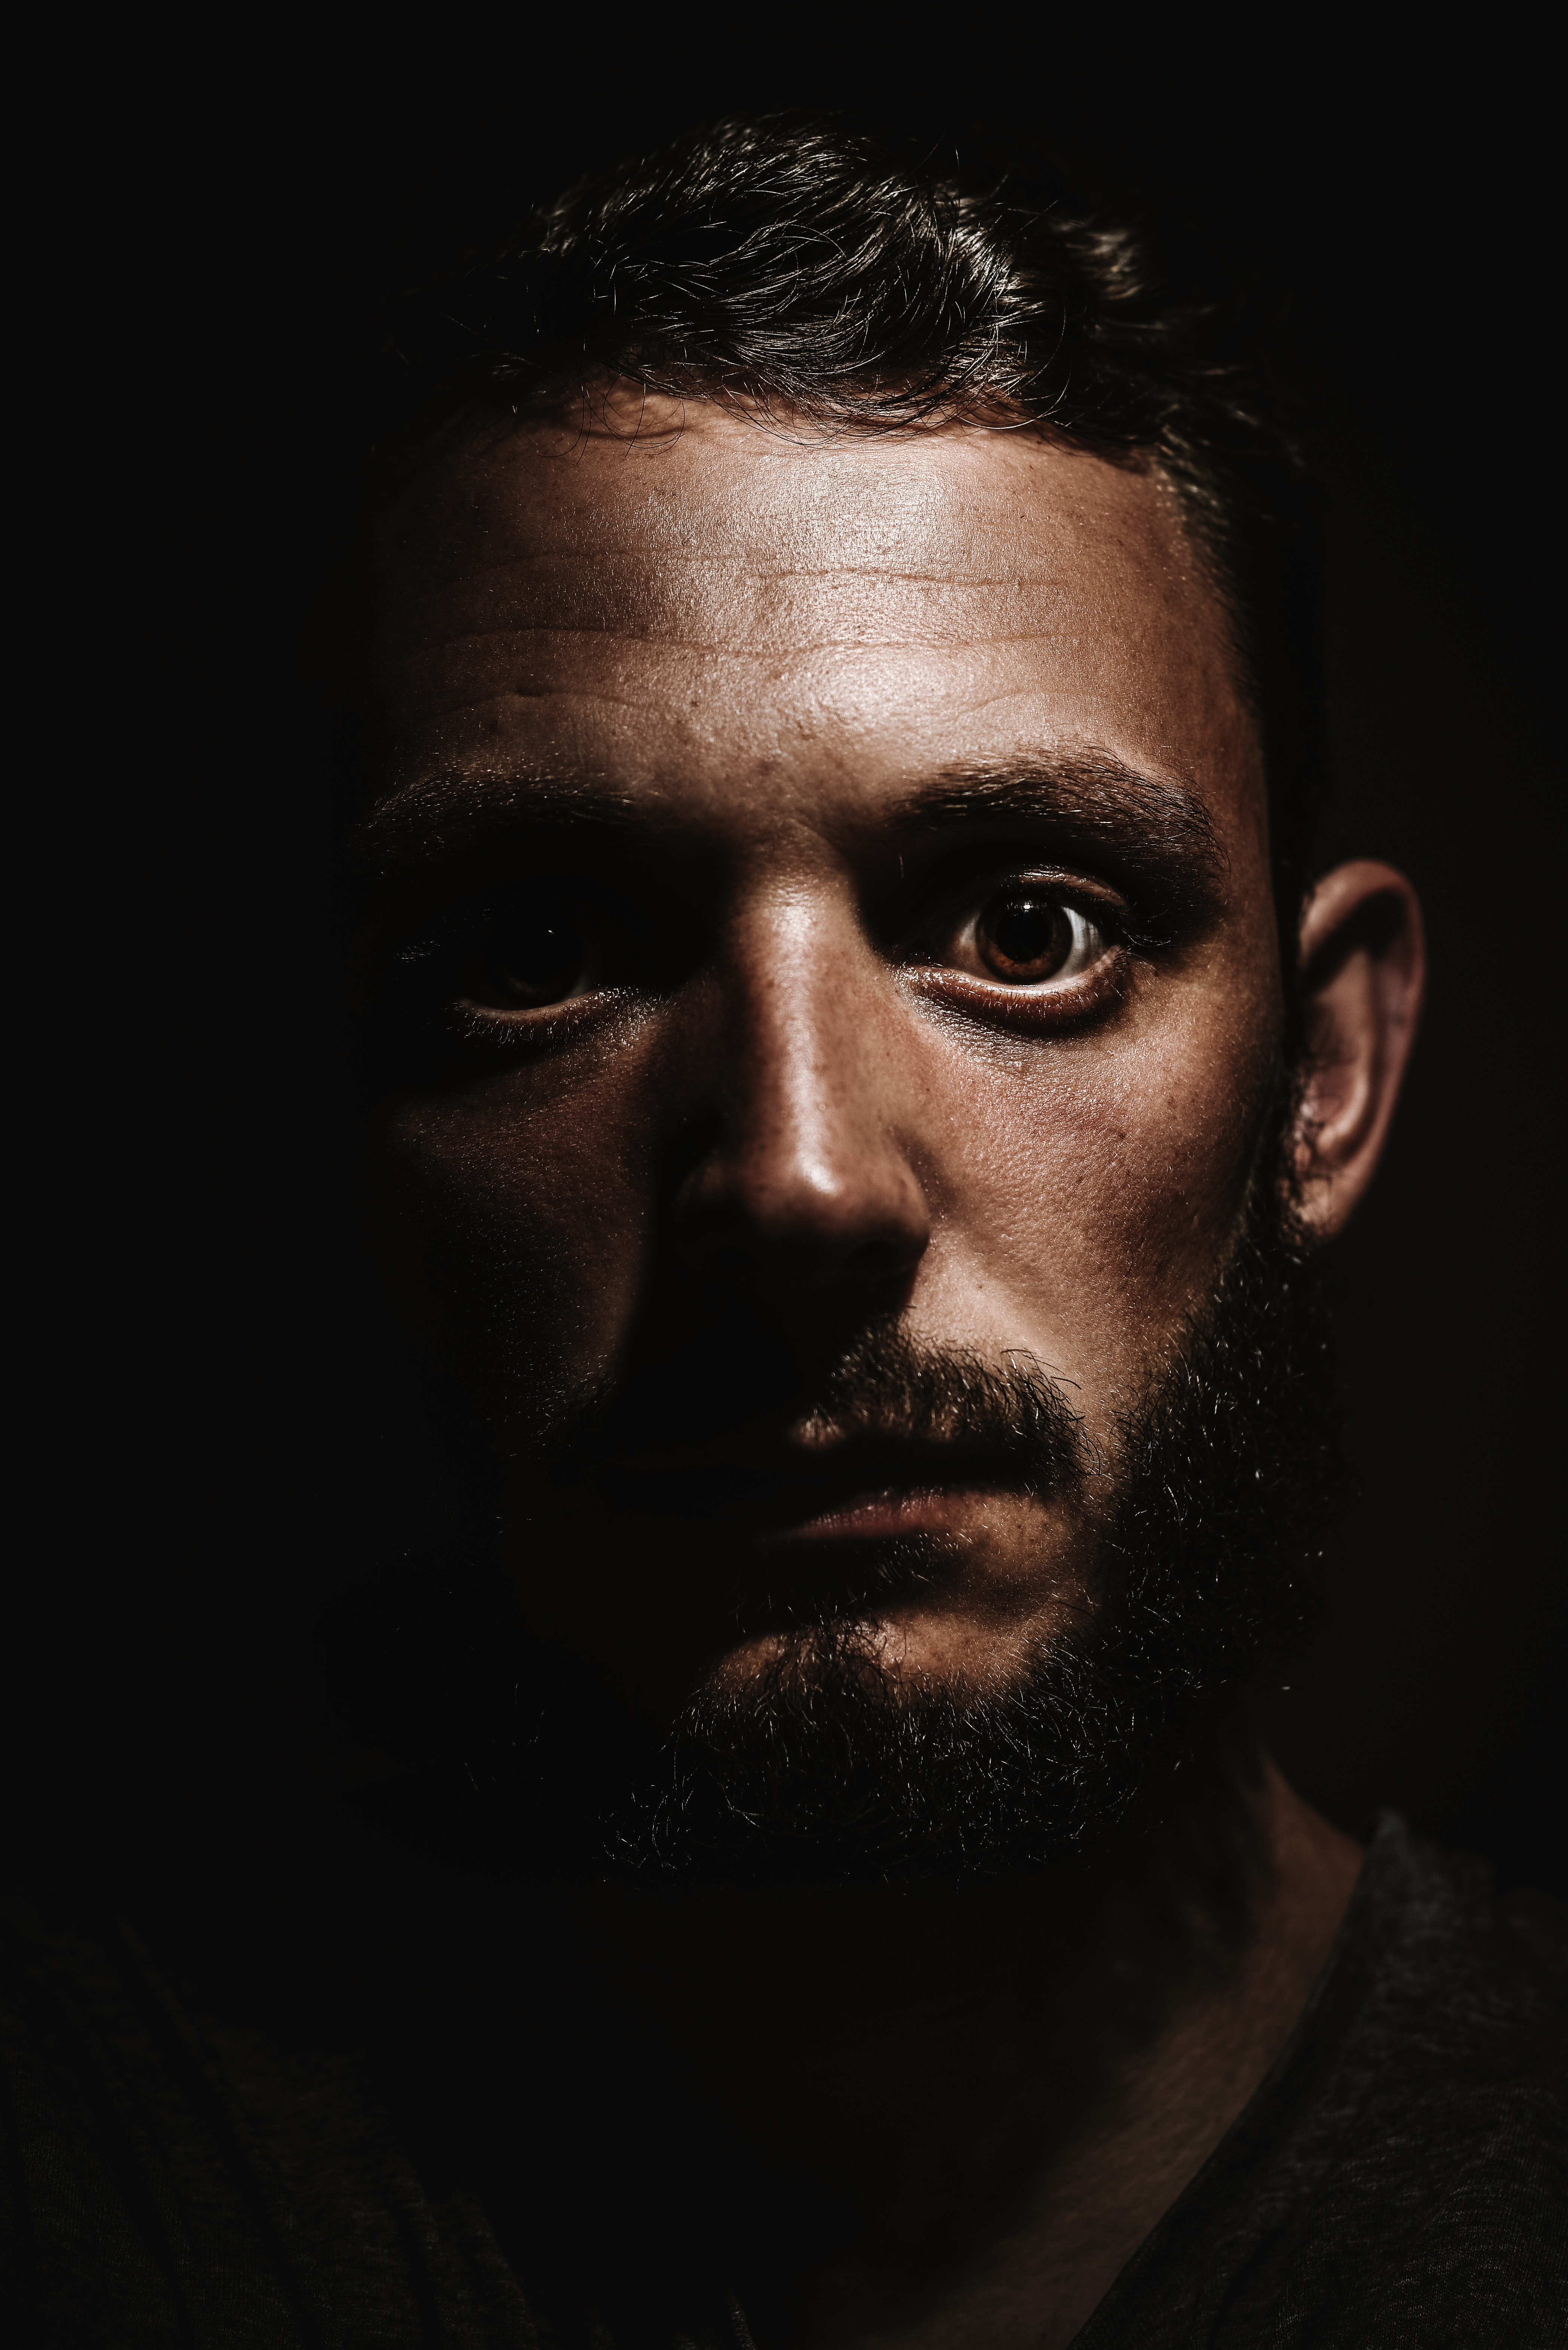 Photography of a person with beard